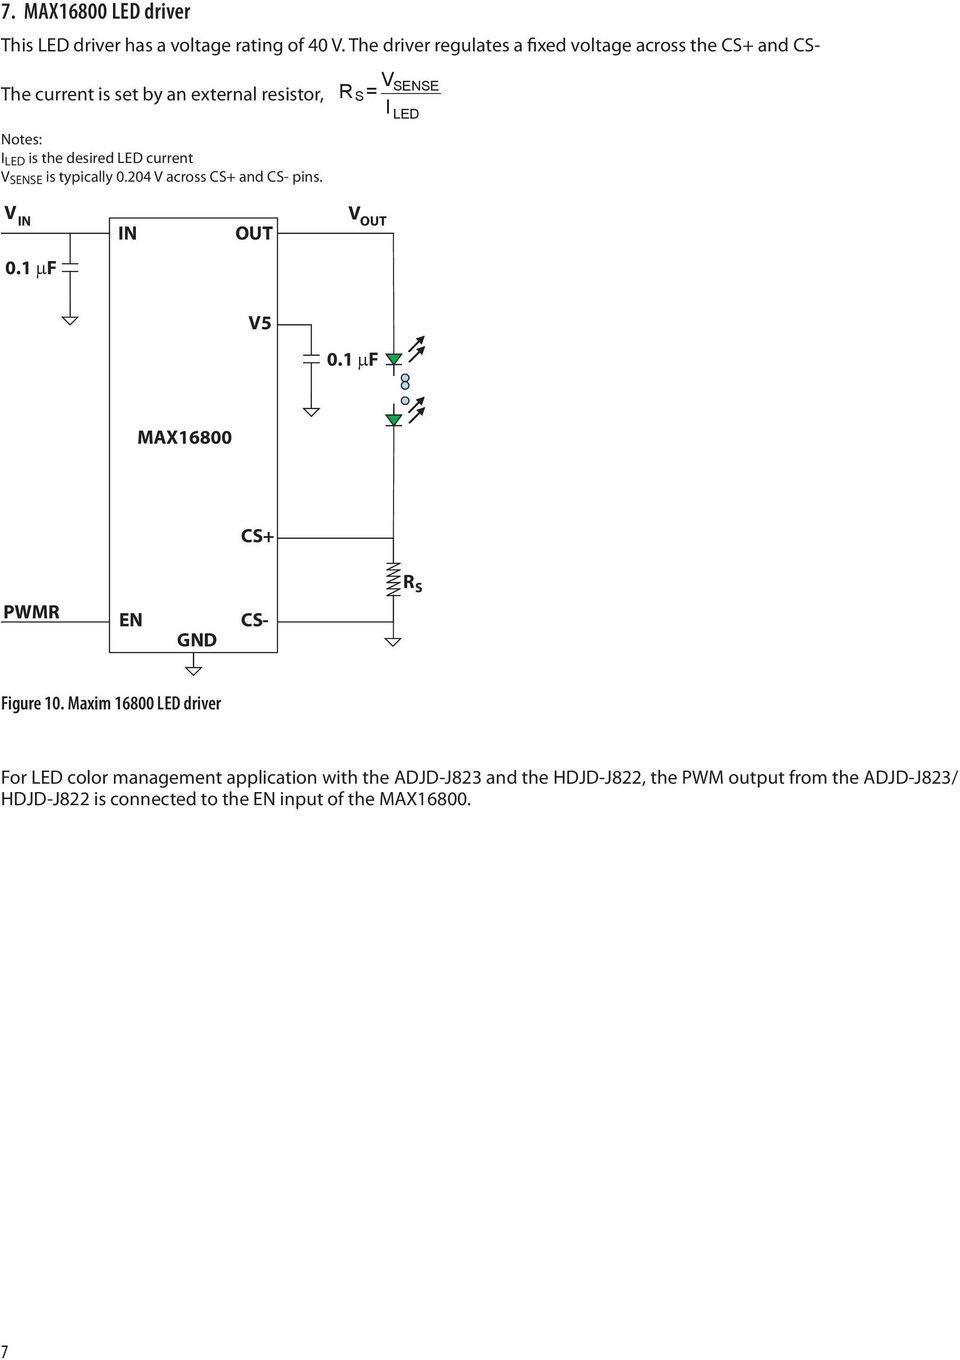 Application Note Pdf Low Drop Linear Led Driver Current V Sense Is Typically 0204 Across Cs And Pins S 8 Switch Mode